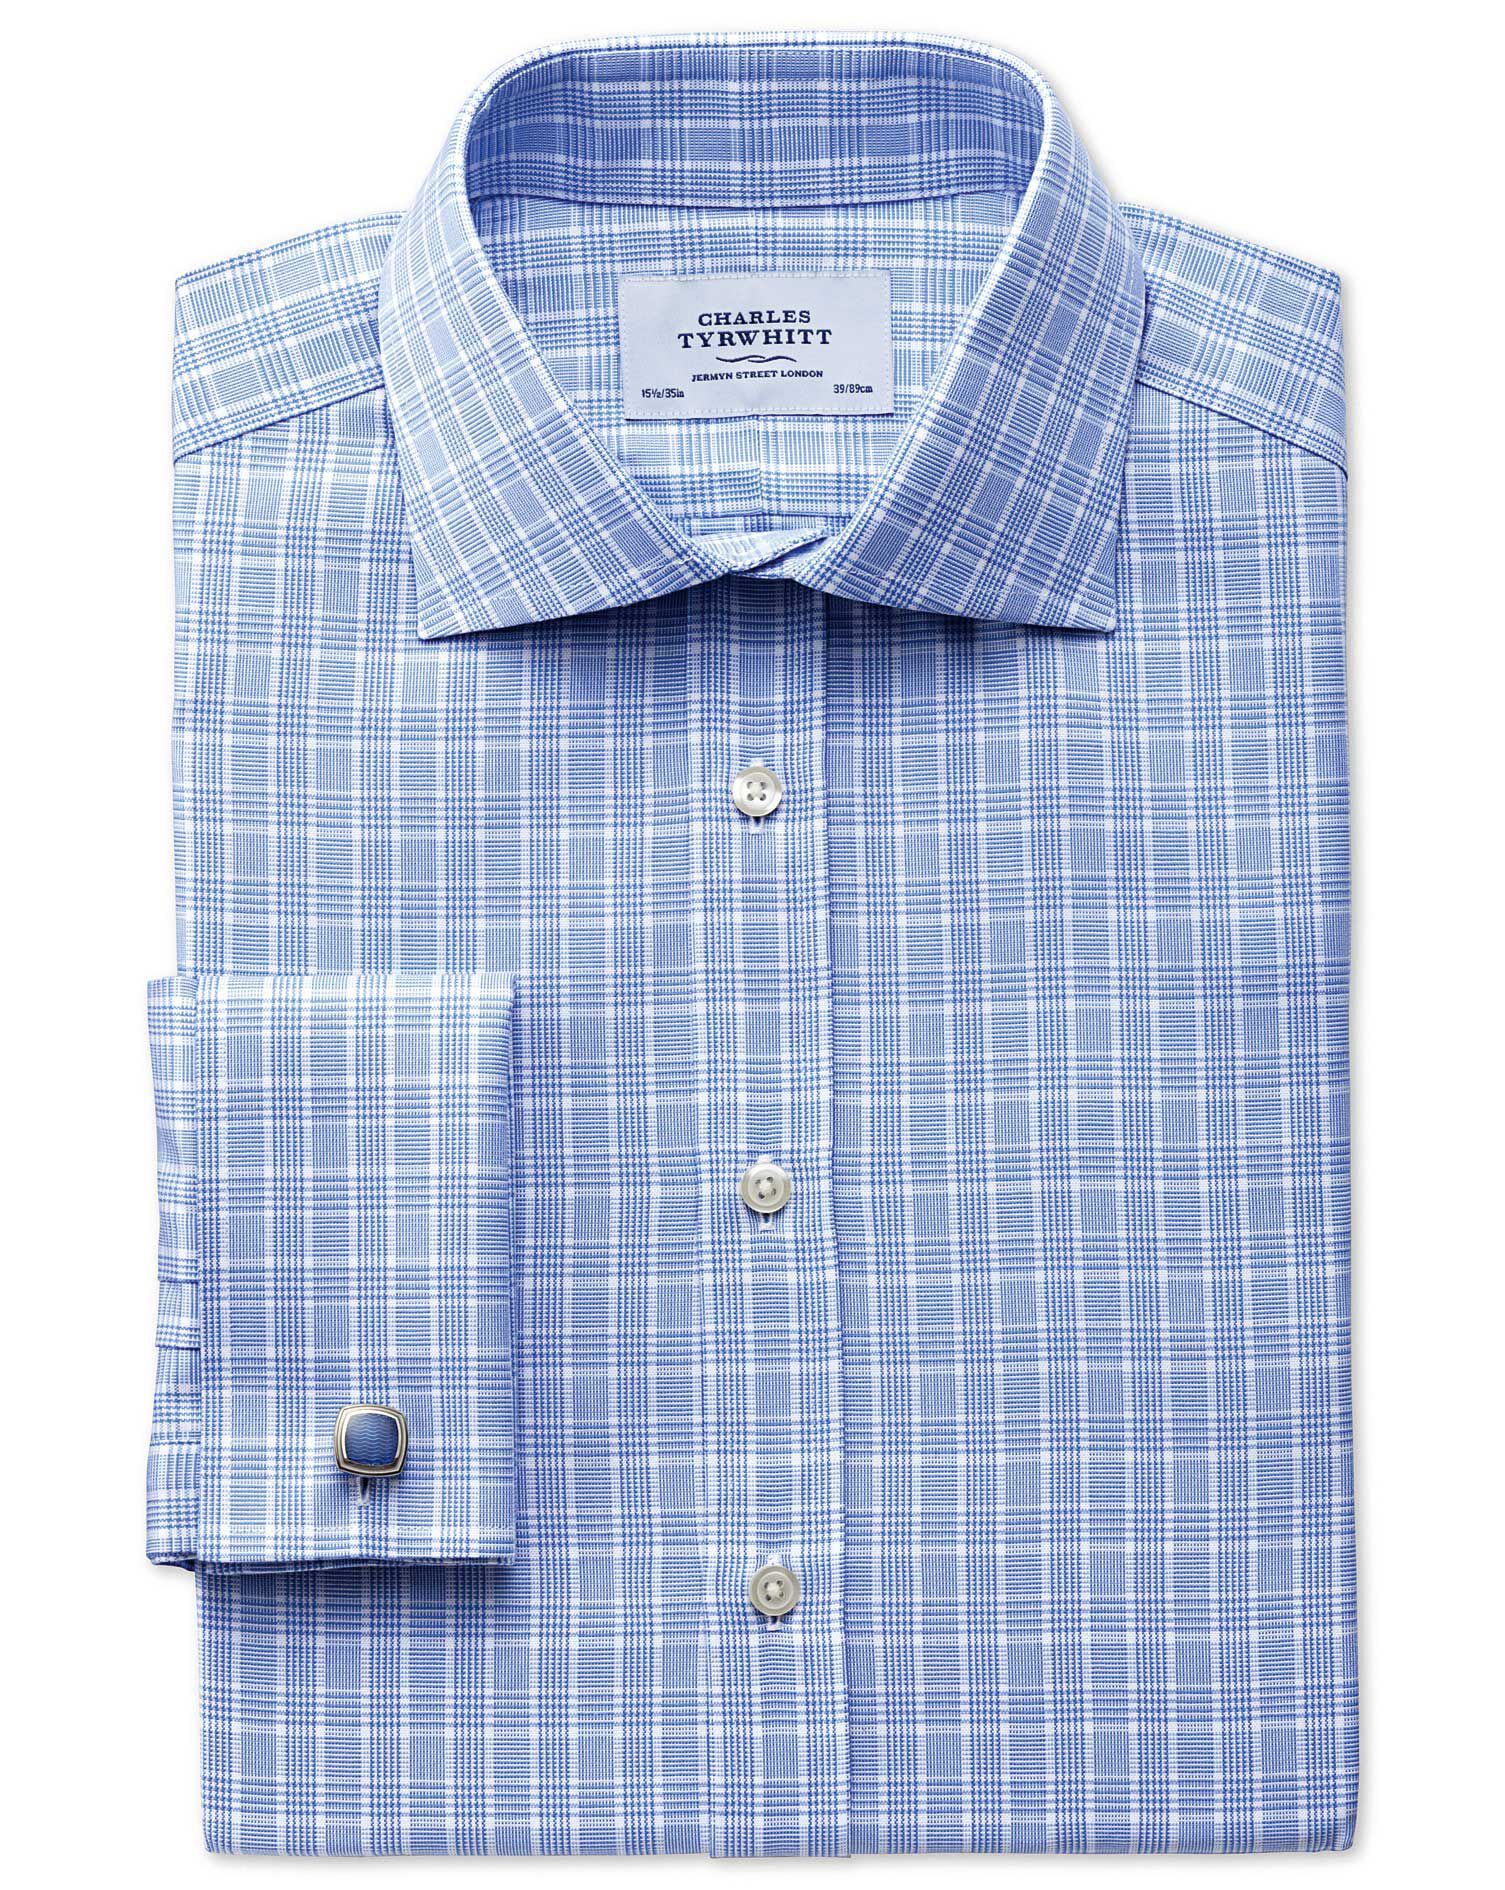 Extra Slim Fit Prince Of Wales Basketweave Sky Blue Cotton Formal Shirt Double Cuff Size 15/35 by Ch